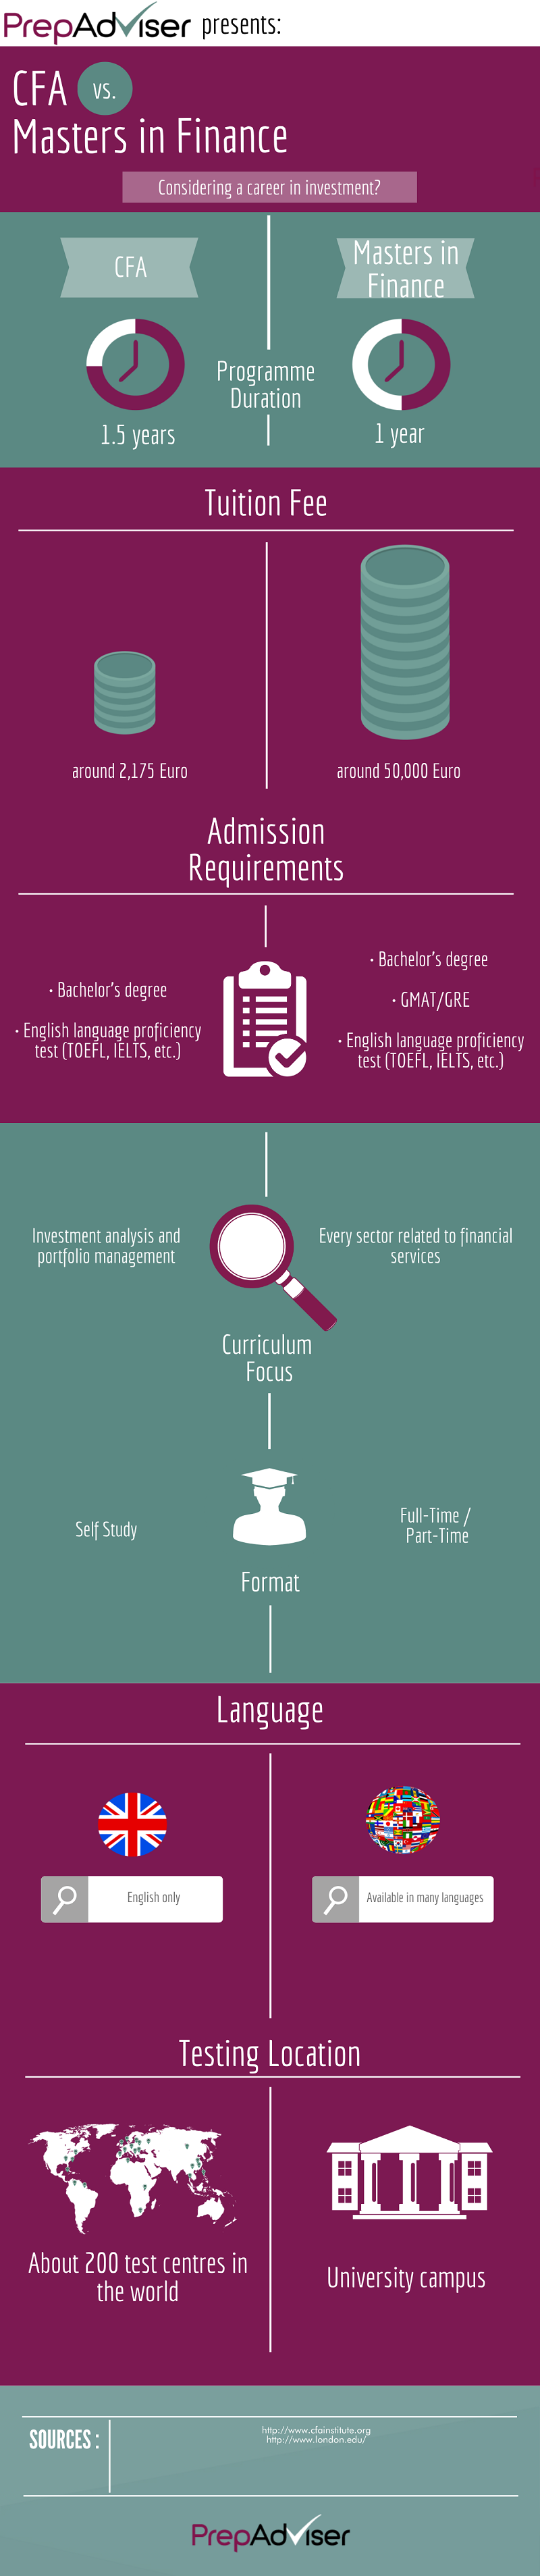 The differences between CFA and Master's in Finance